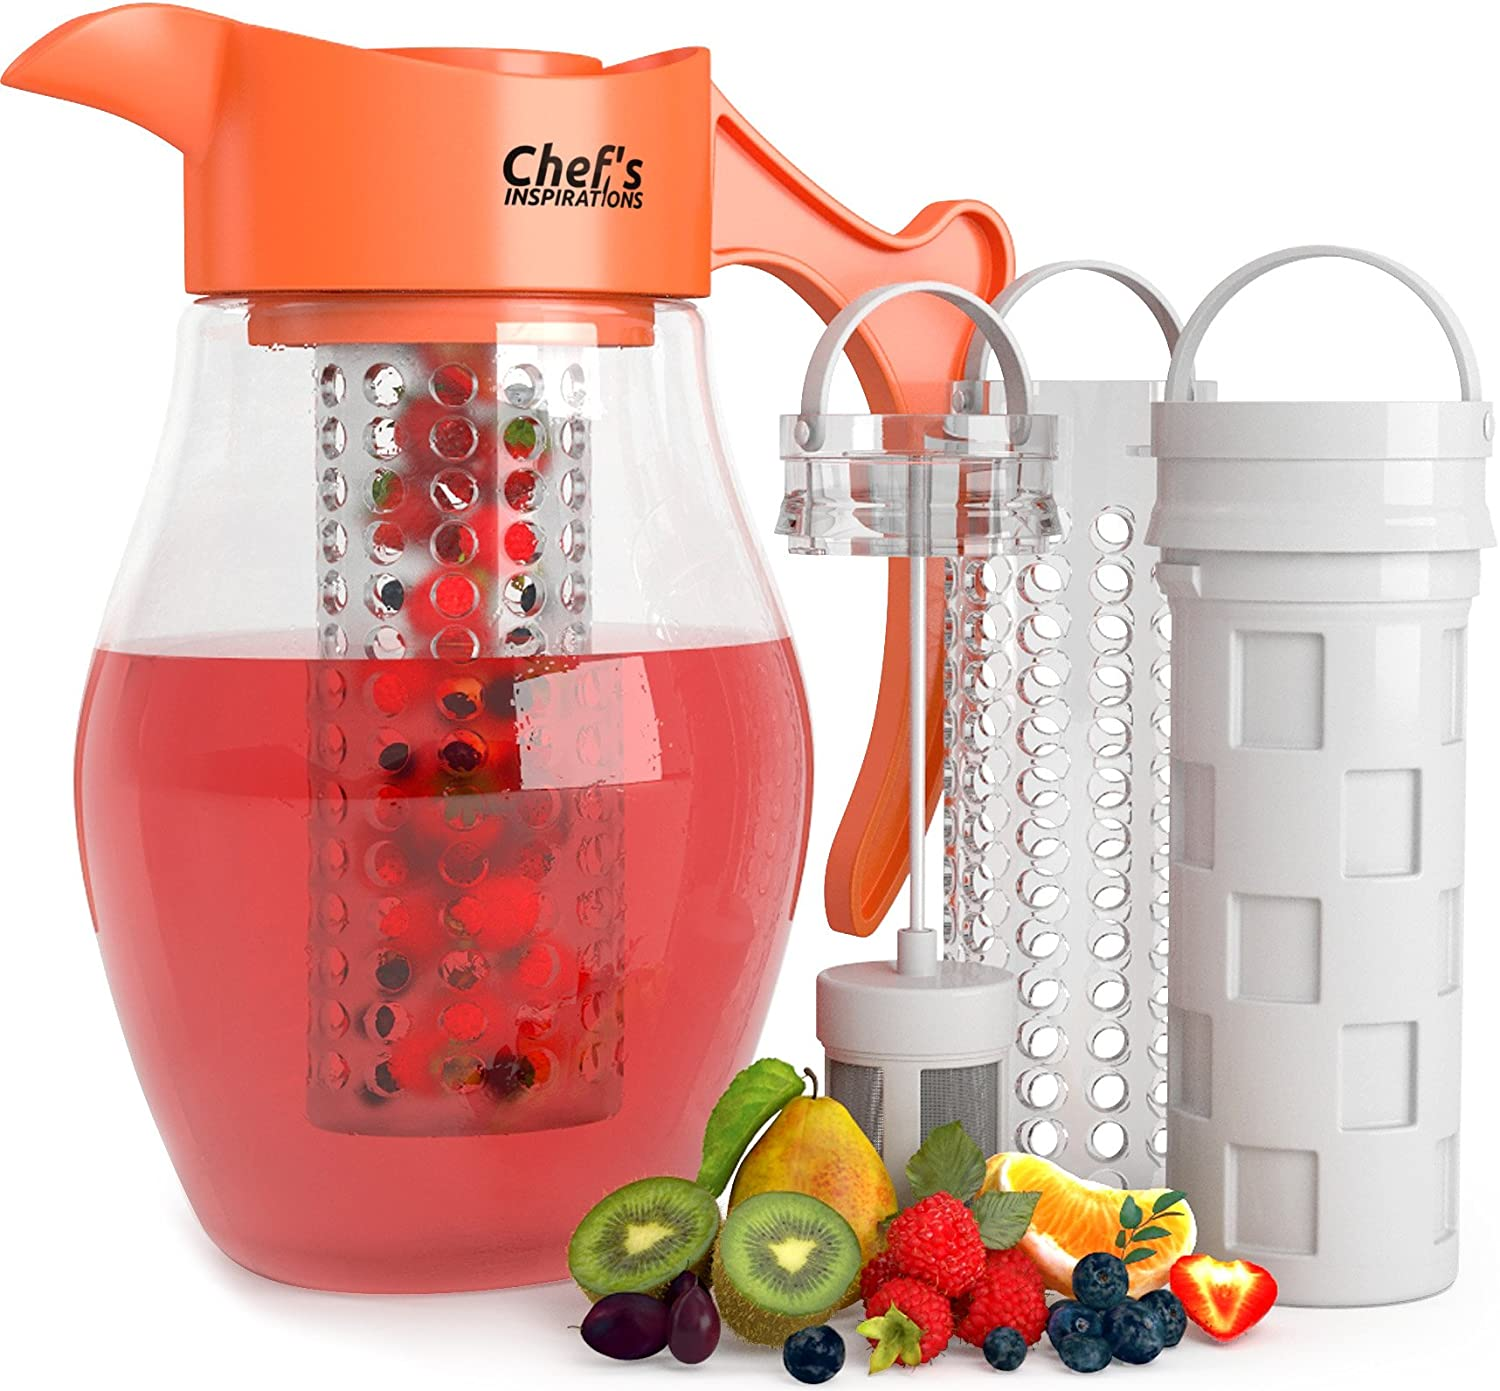 Chef s INSPIRATIONS 3 Core Infusion Water Pitcher. 3 Quart 2.8 Liters . Best For Flavored Infused Tea, Fruit or Herbs. Includes 3 Inserts for Fruit, Tea Ice. Bonus Infuser Recipe eBook.